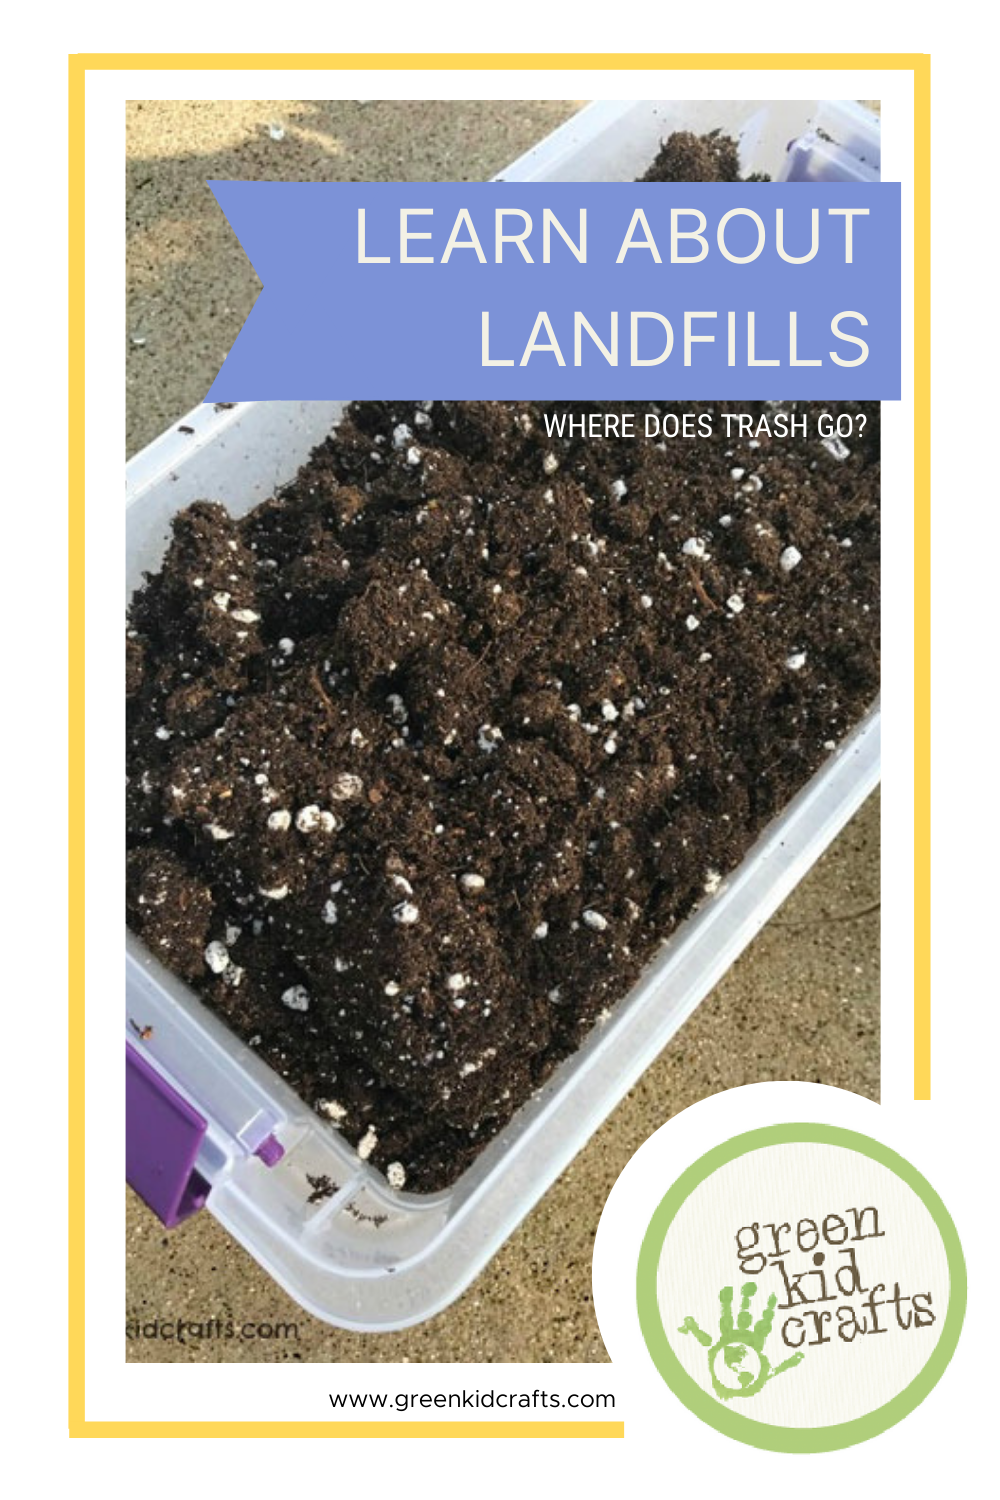 Learning about Landfills